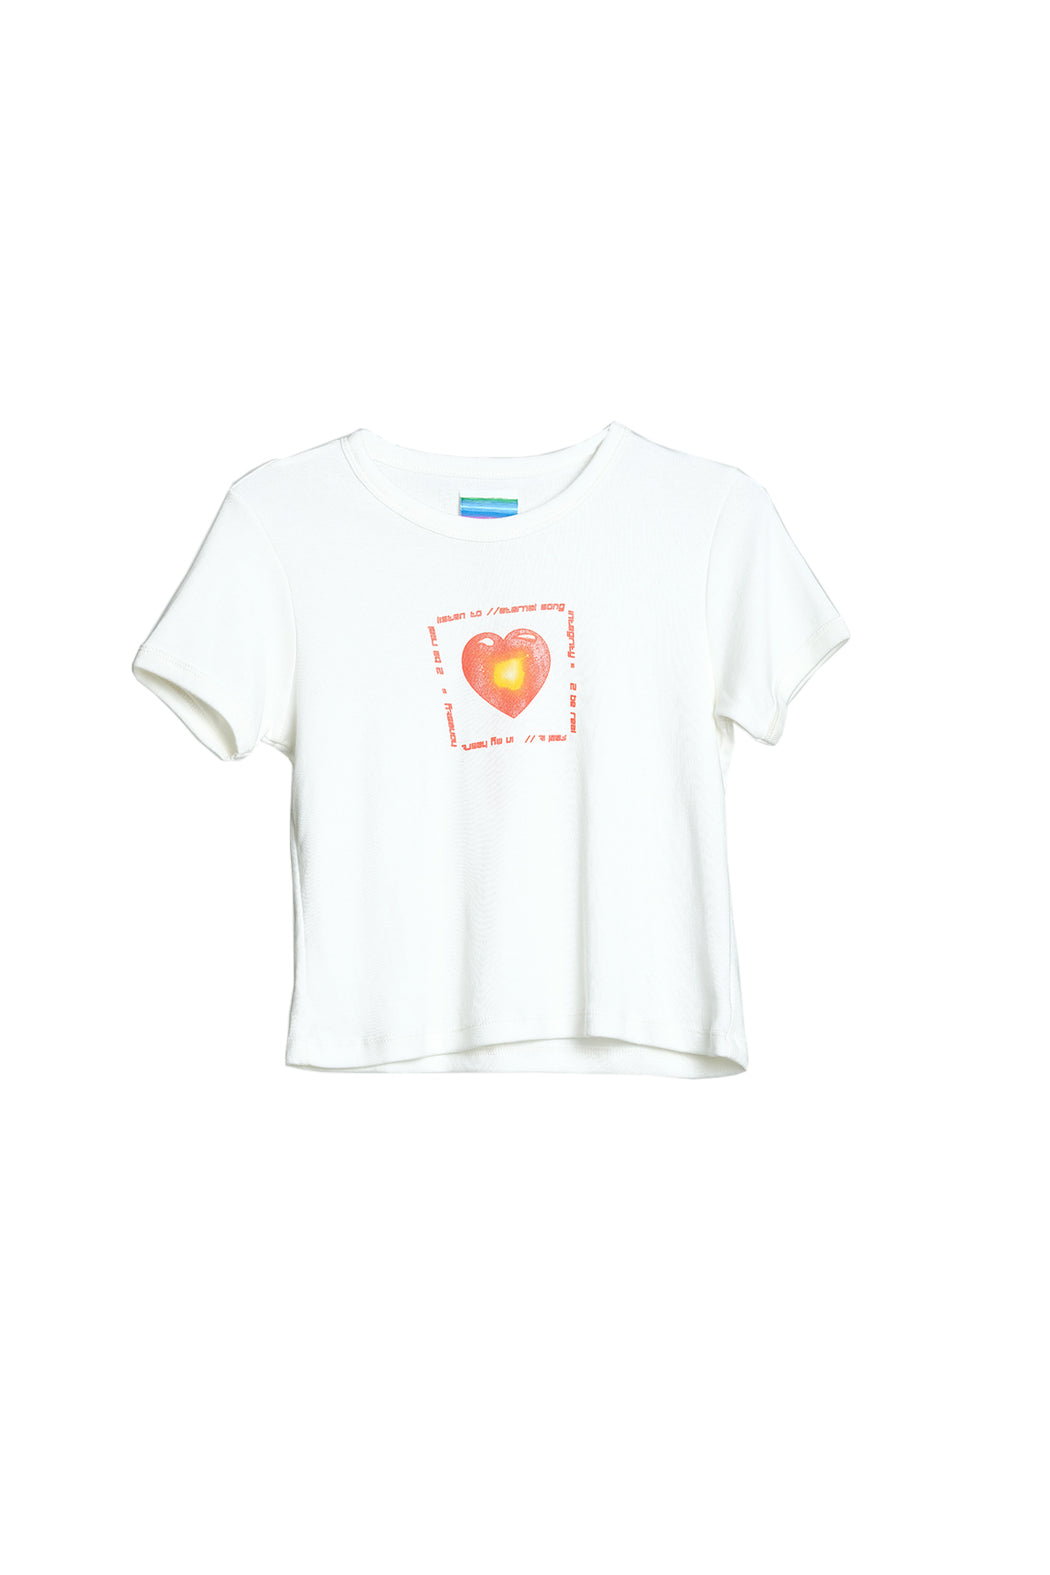 To Be Real Tee - White